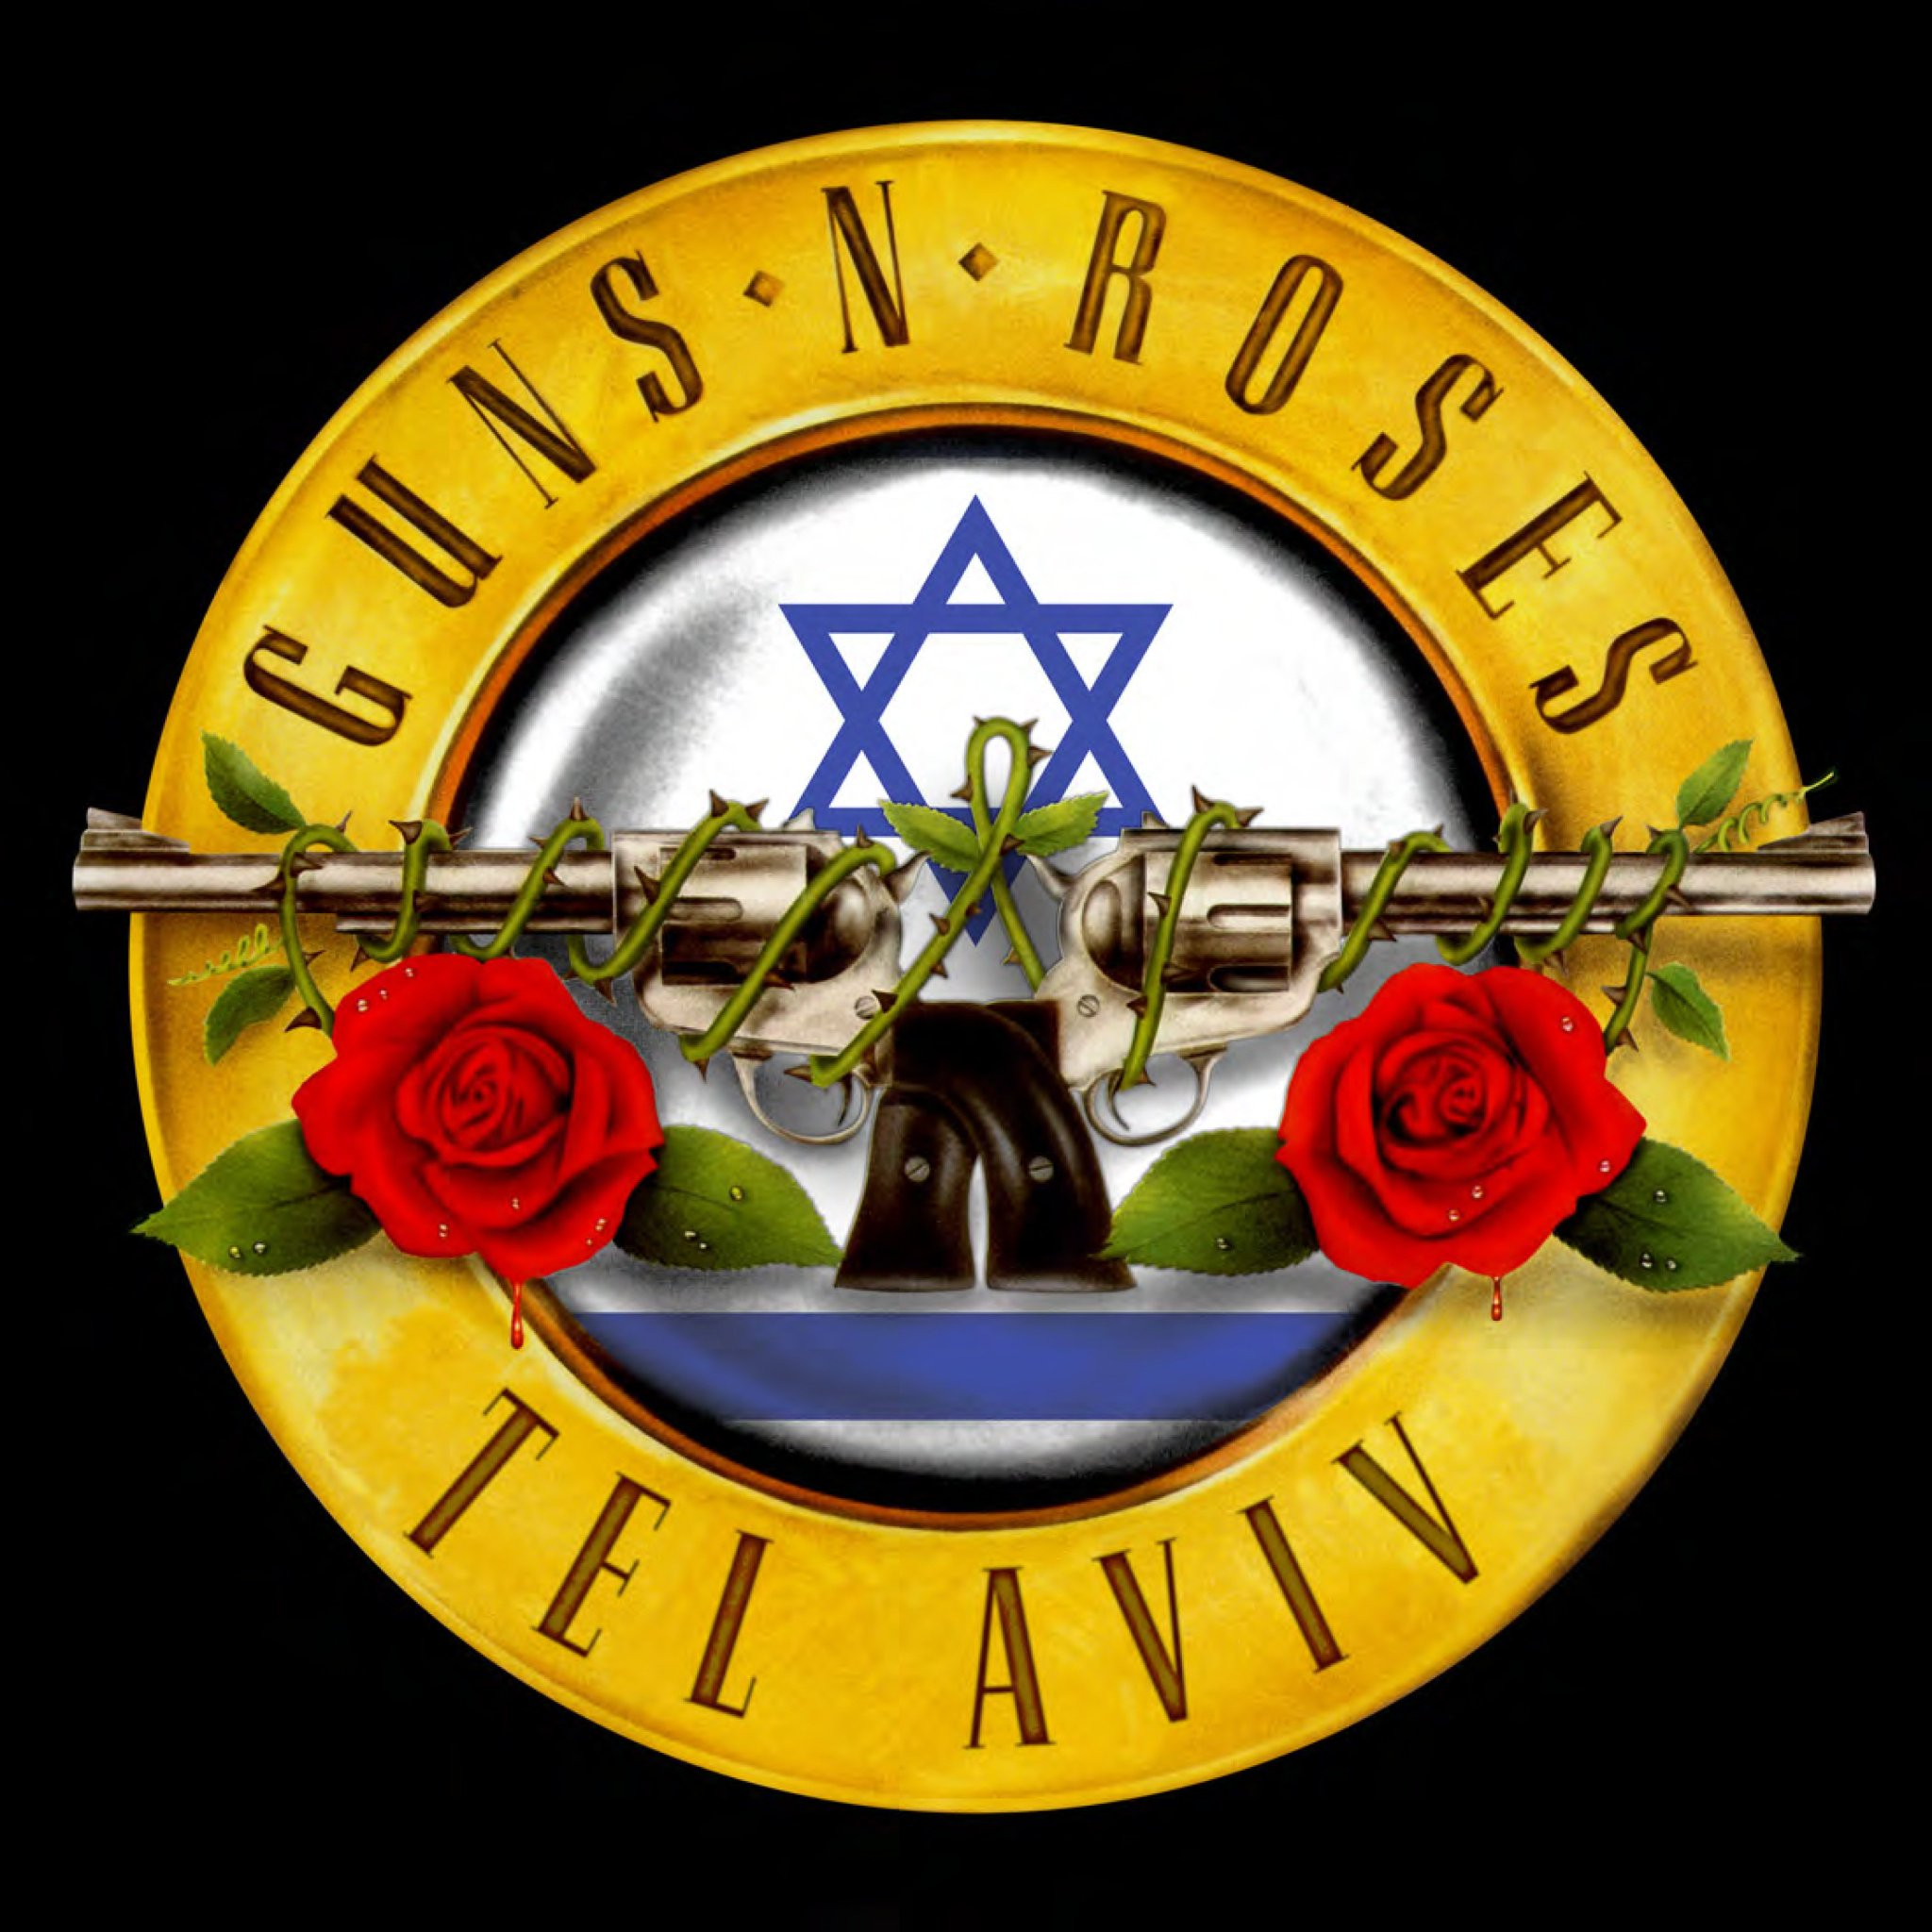 Last stop is Tel Aviv... #GnFnR #NotInThisLifetime Tour 2017 https://t.co/f05rtcQFaU